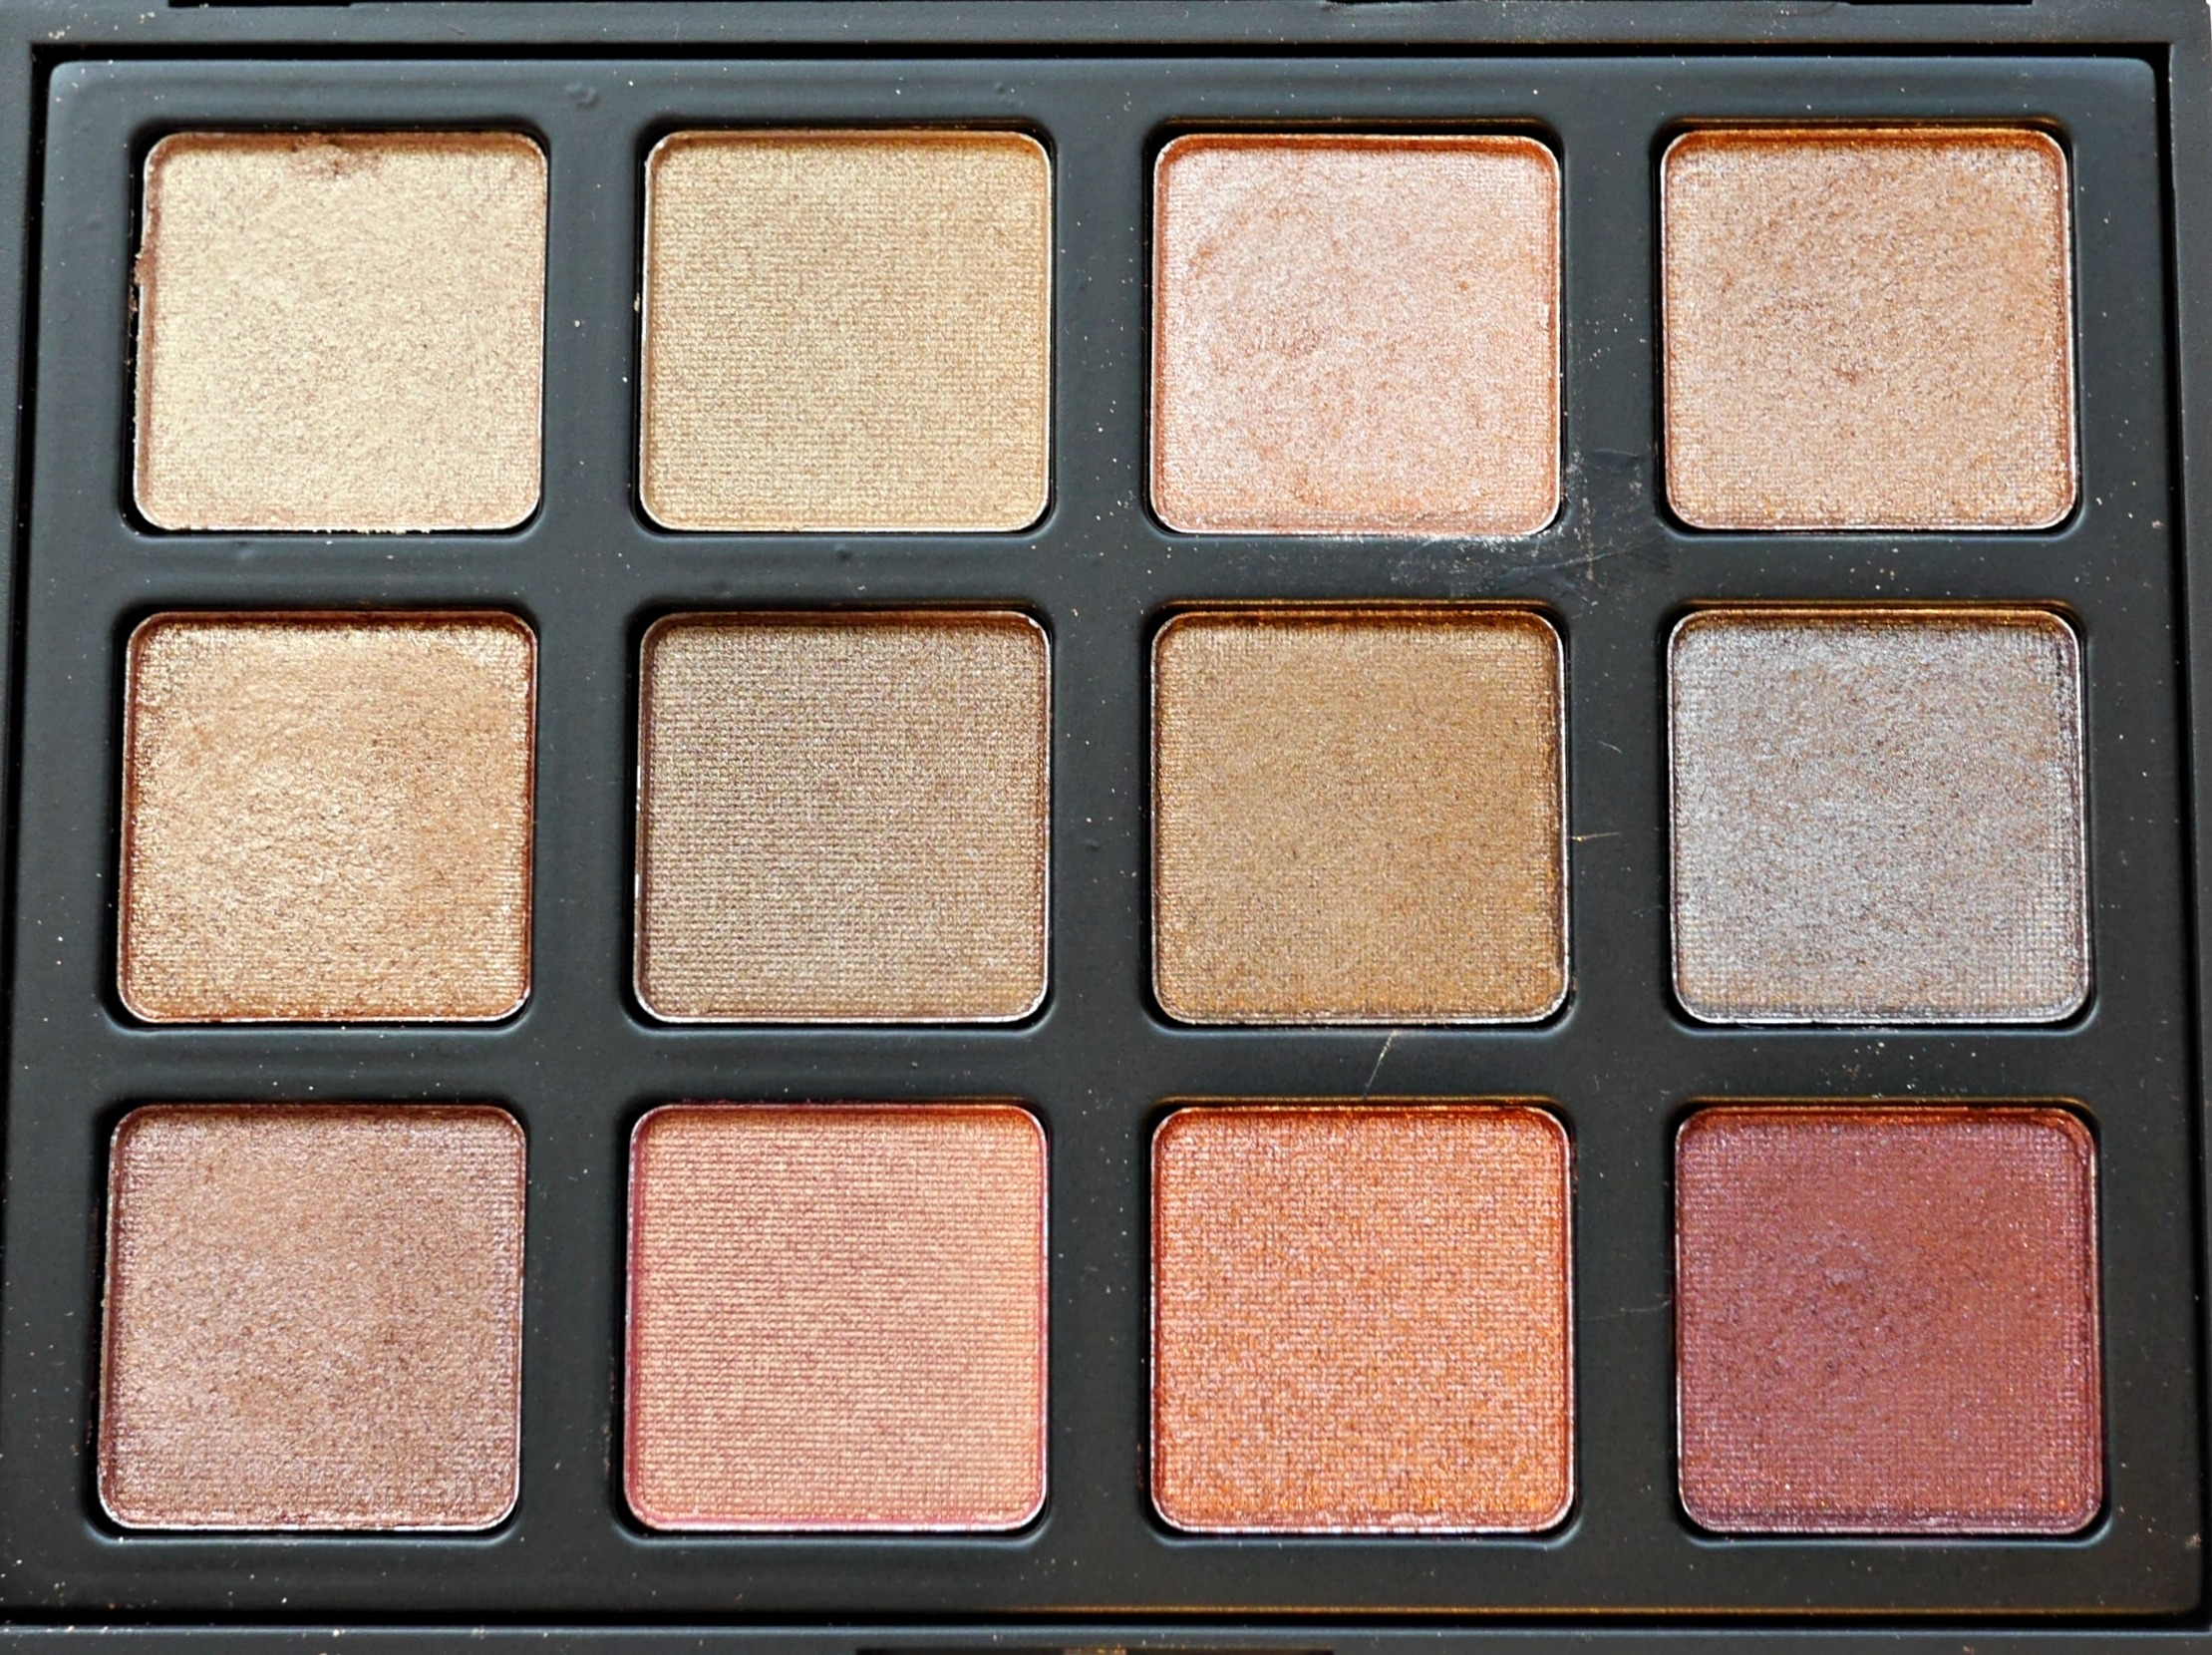 Morphe 12S Soul of Summer Palette – Review & Swatches